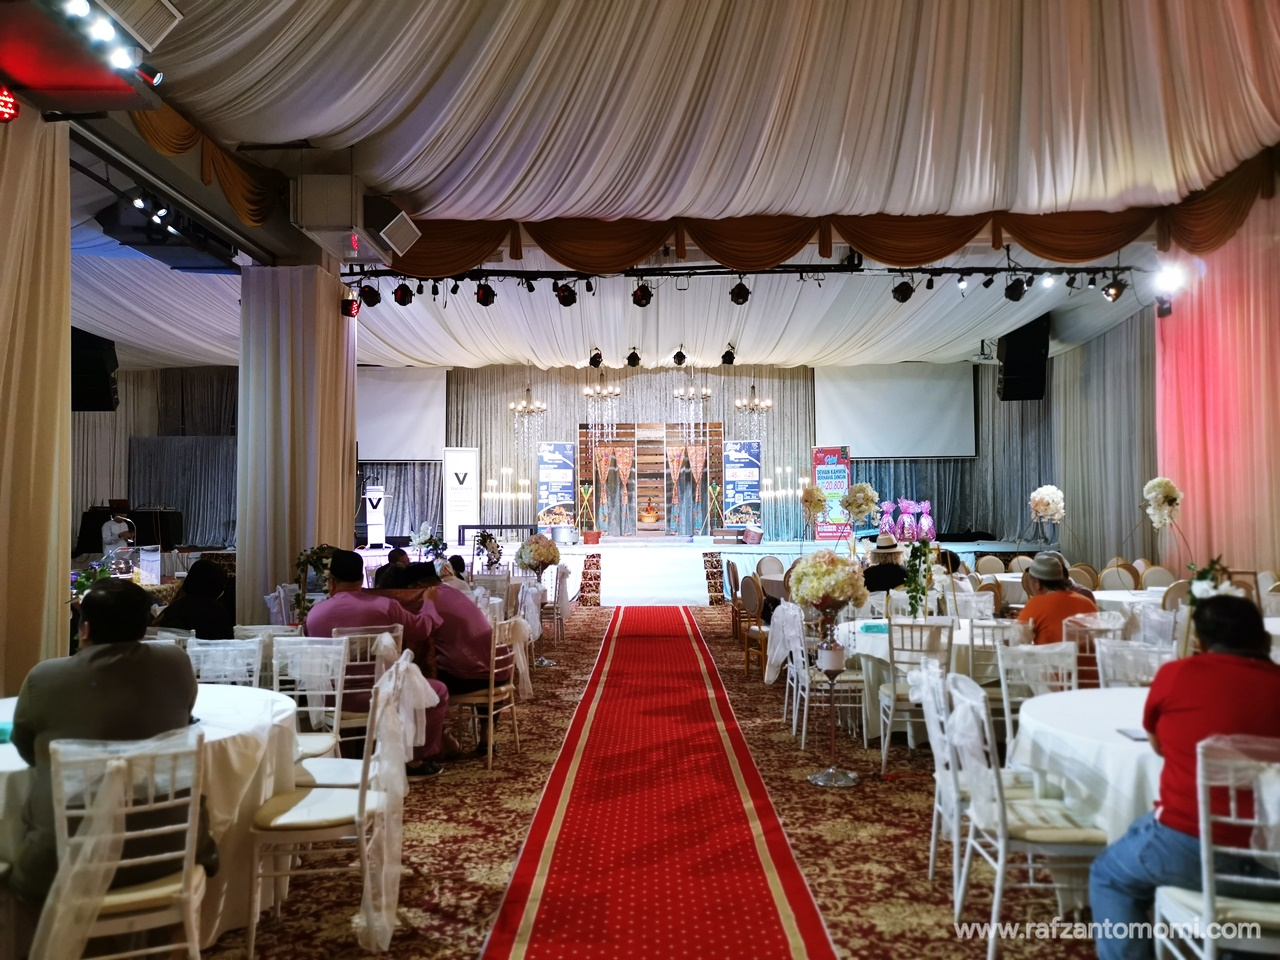 Buffet Ramadan 2019 - The Venue Shah Alam